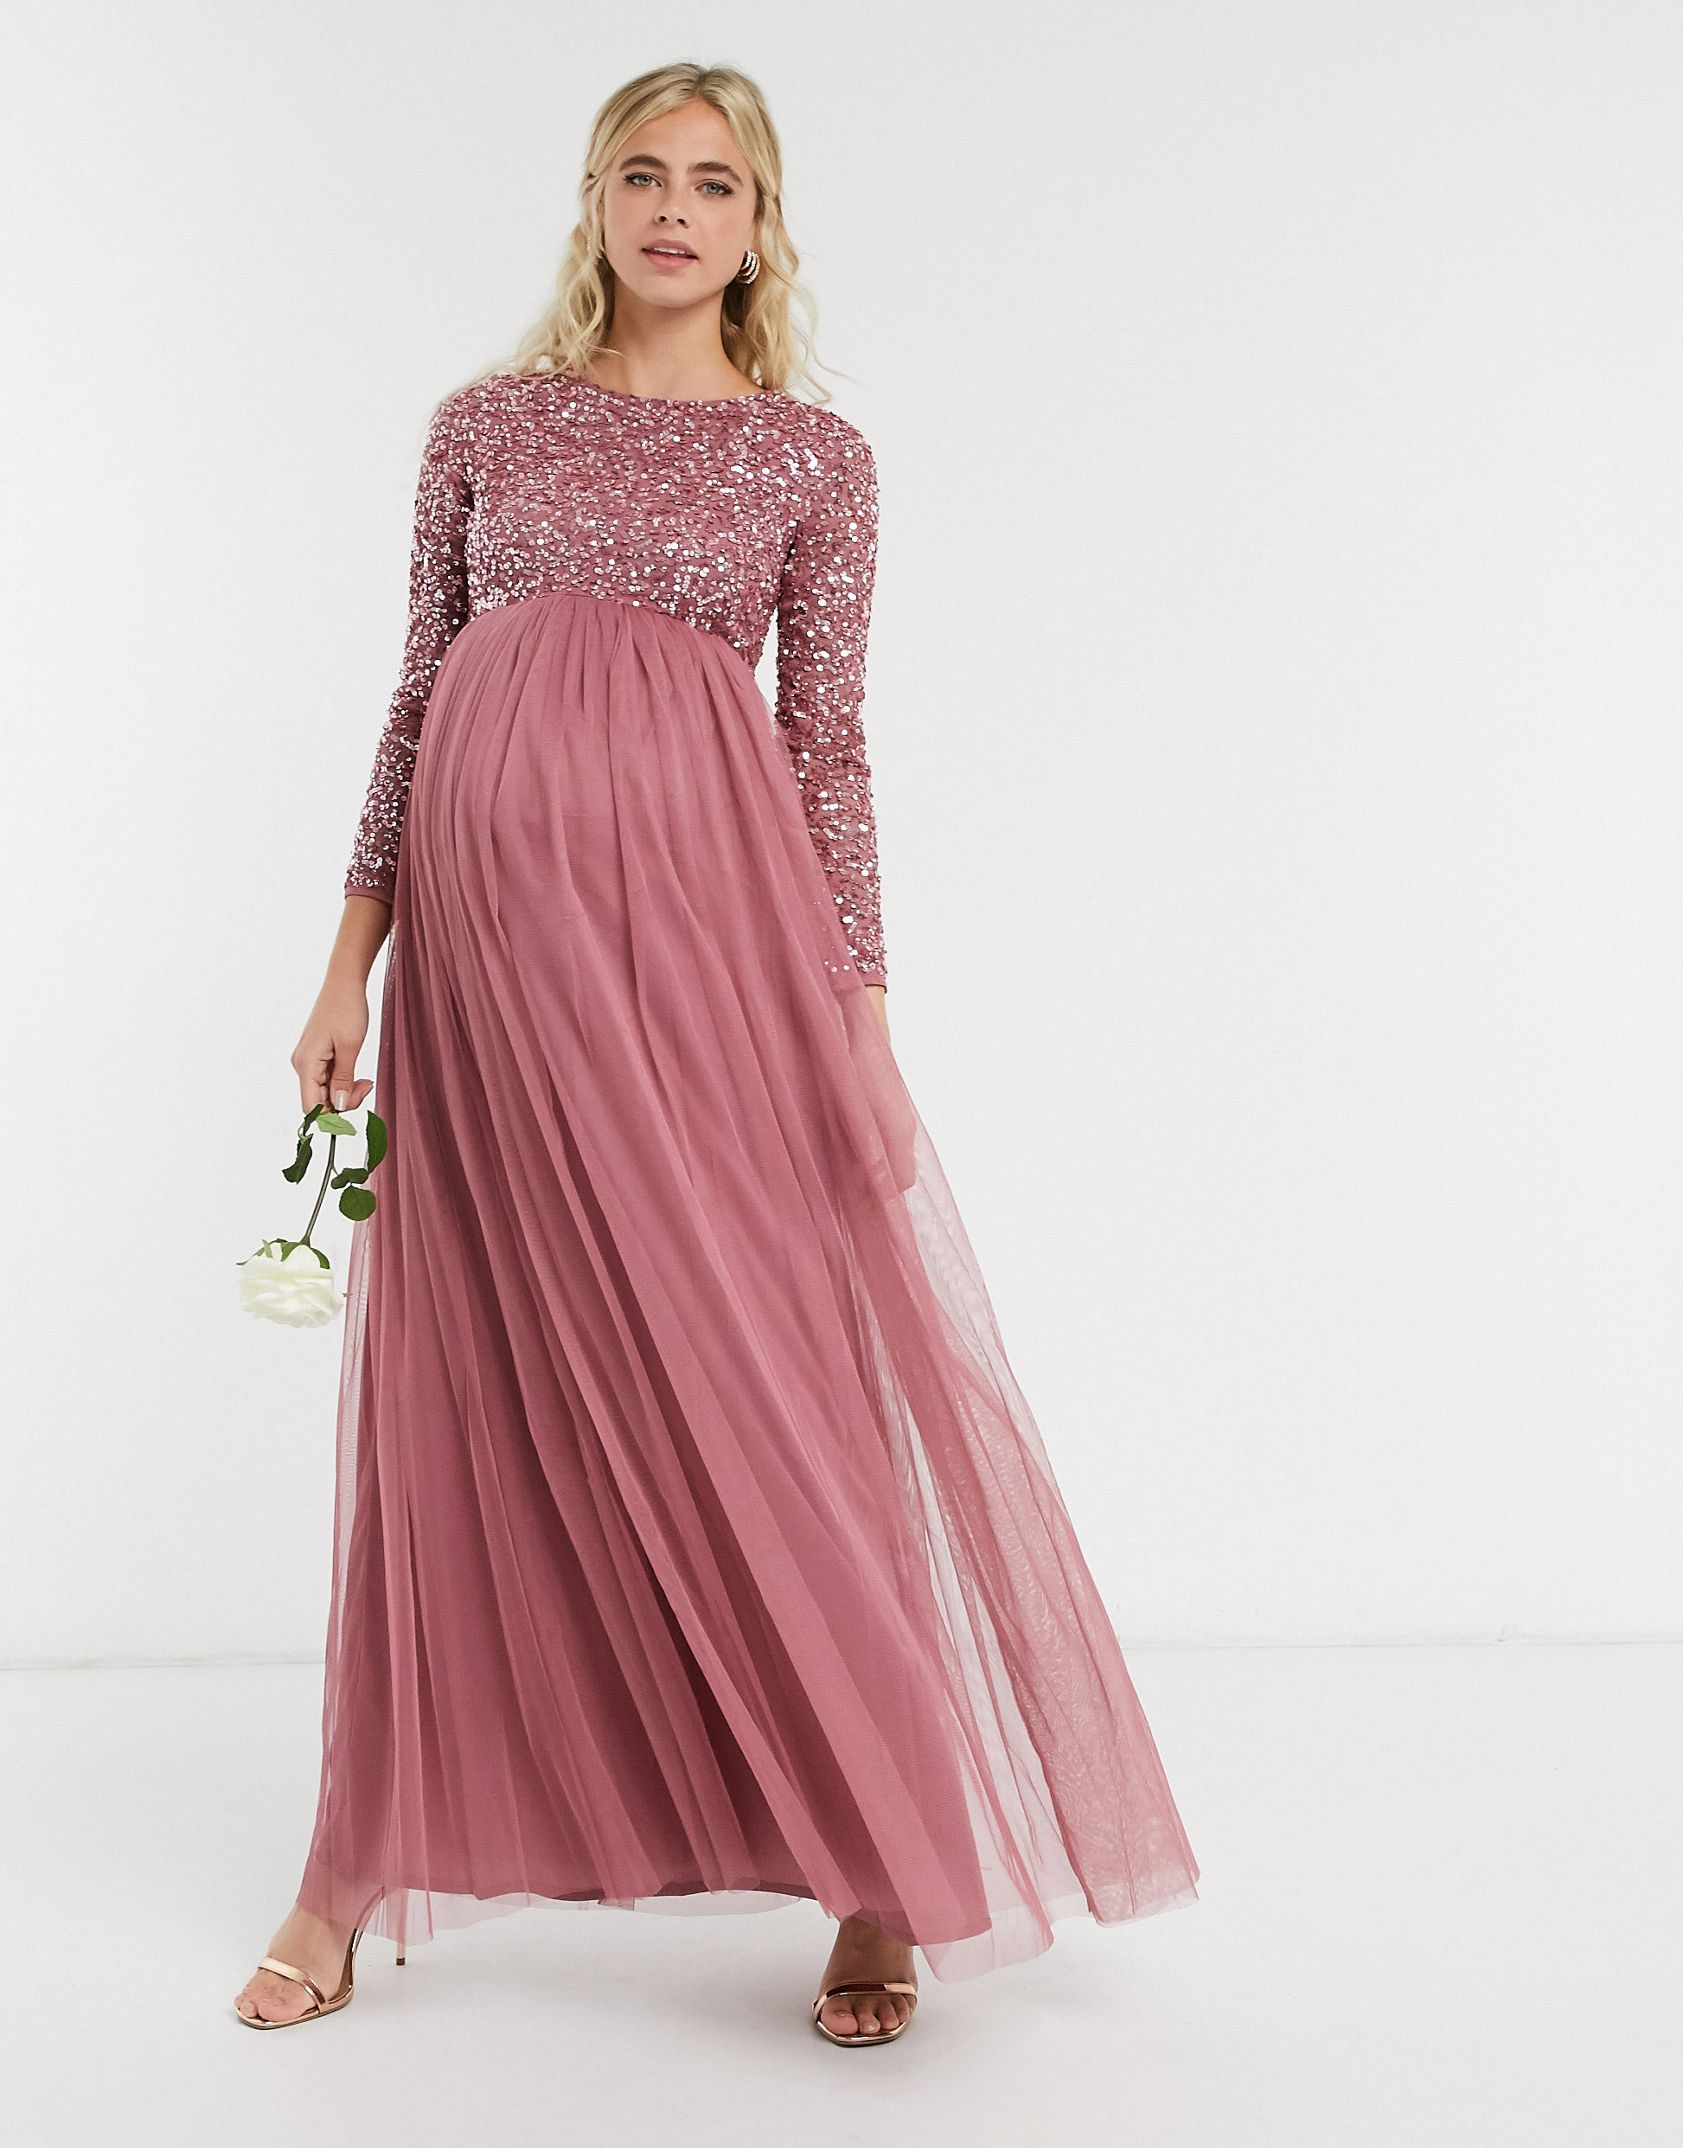 Maya Maternity delicate sequin long sleeve maxi dress with tulle skirt in rose -  Price Checker